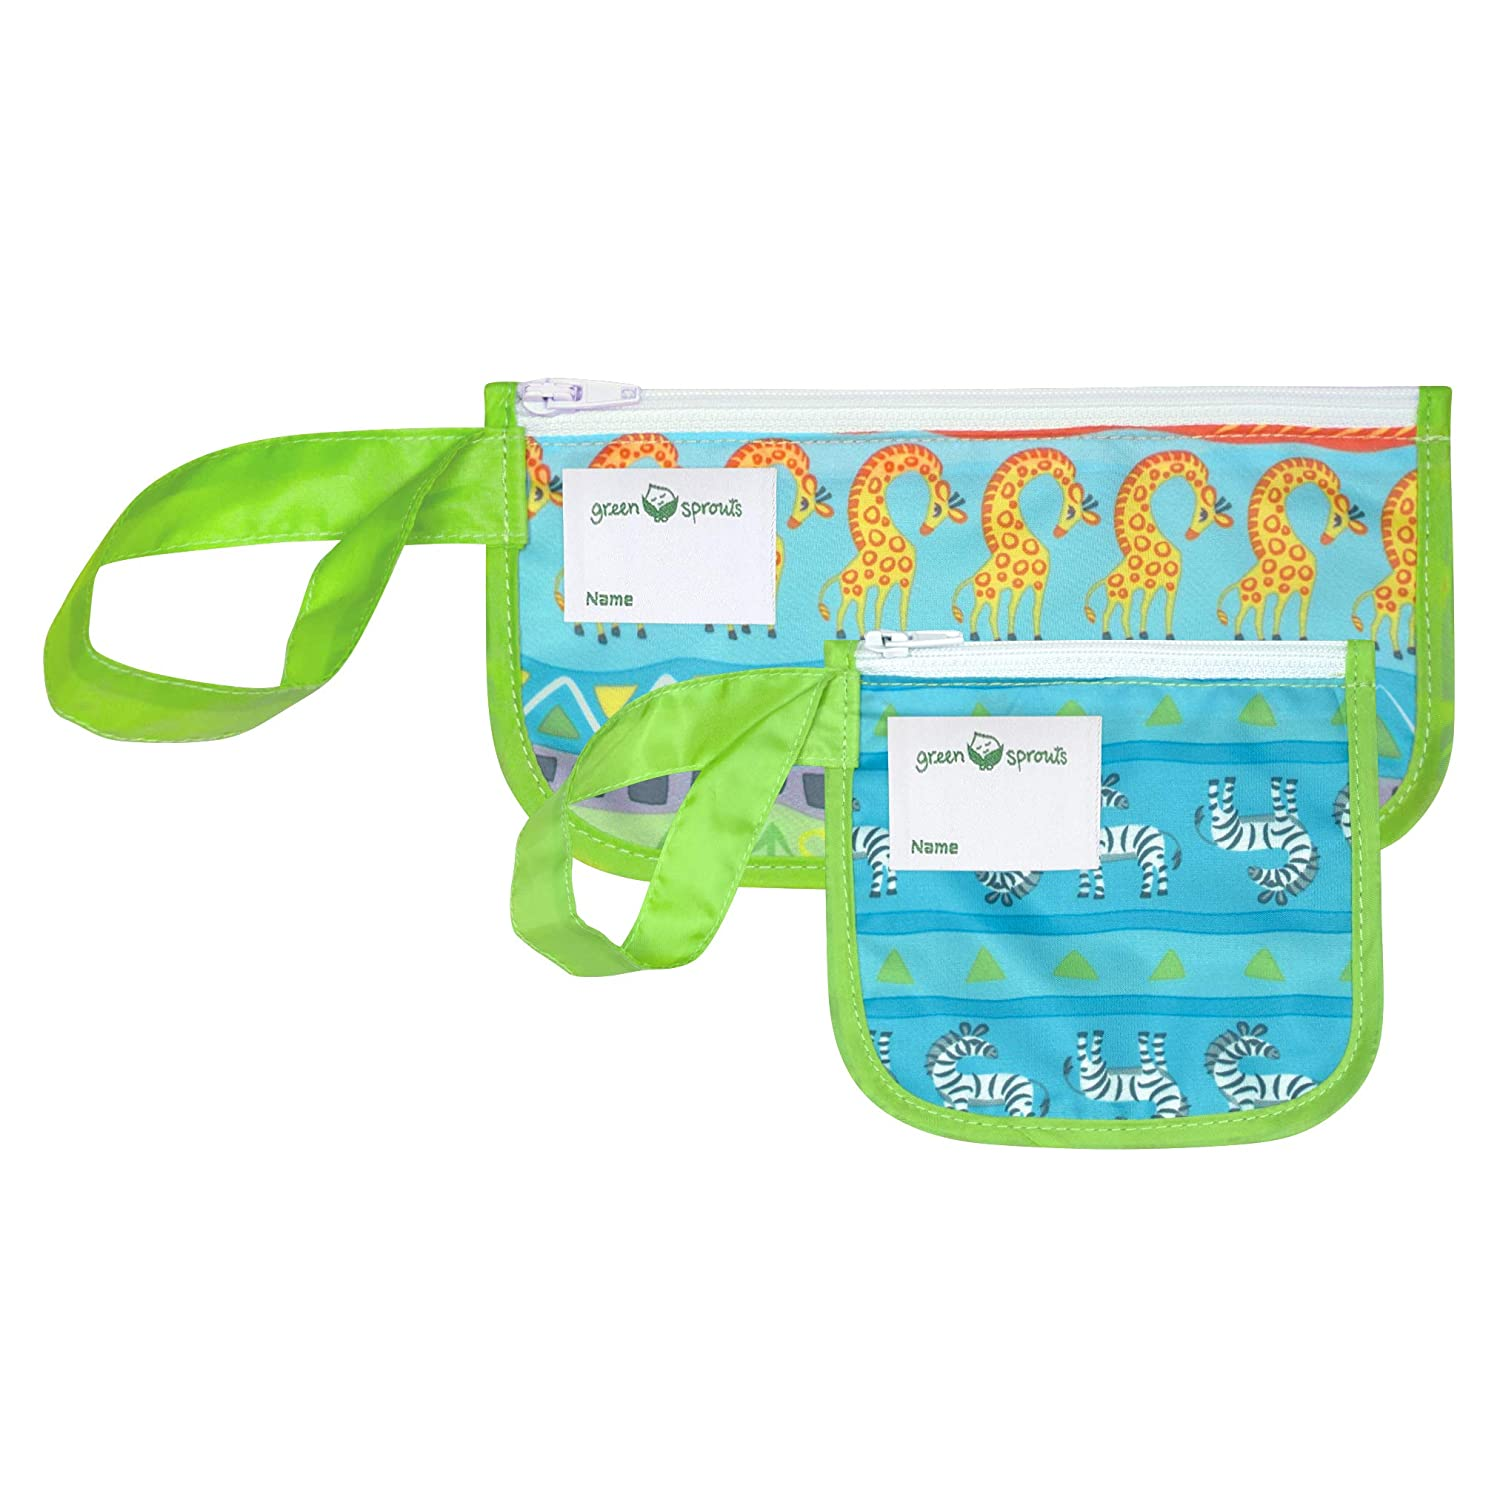 green sprouts Reusable Snack Bags (2 Pack) | Holds Food, Utensils, Wipes, & More | Food-Safe, Waterproof, Easy-Clean Material, Green Safari